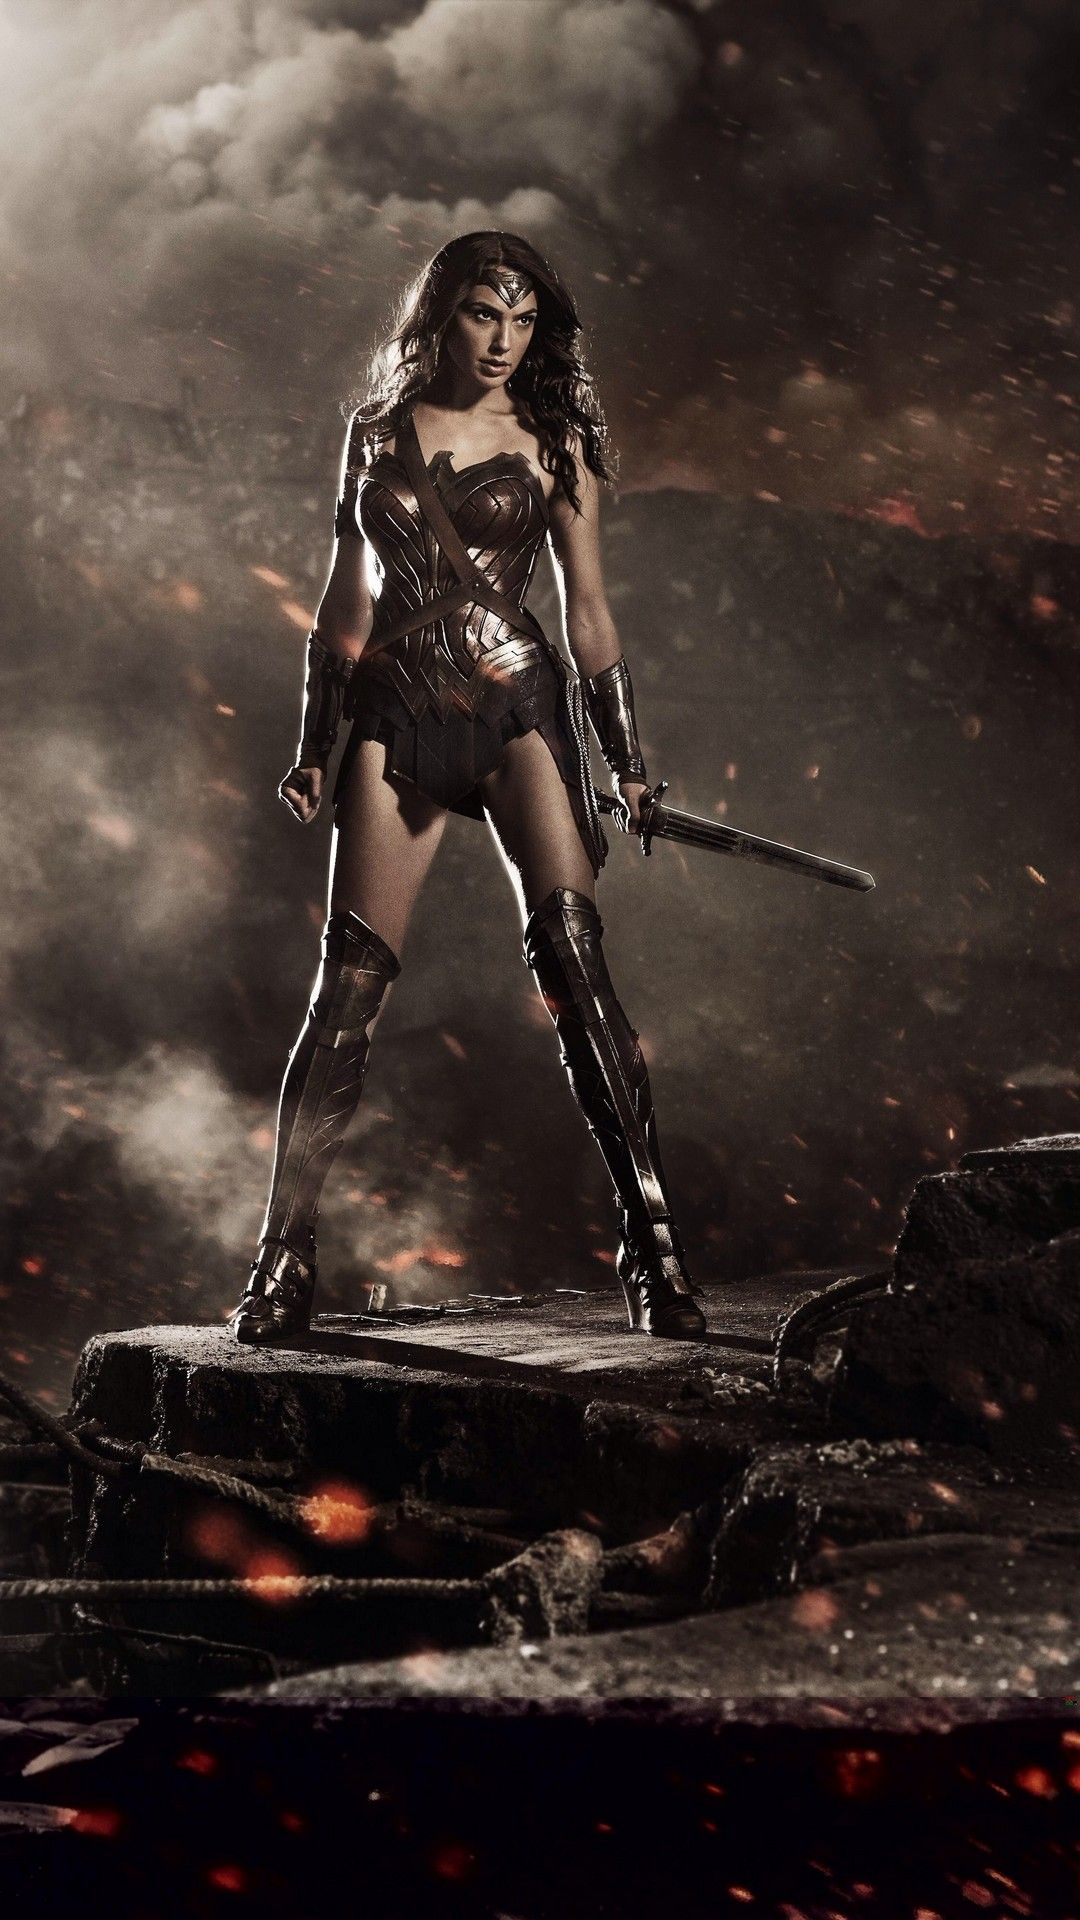 Gal Gadot Wonder Woman Iphone Wallpaper Best Iphone Wallpaper Batman Wonder Woman Wonder Woman Comic Gal Gadot Wonder Woman